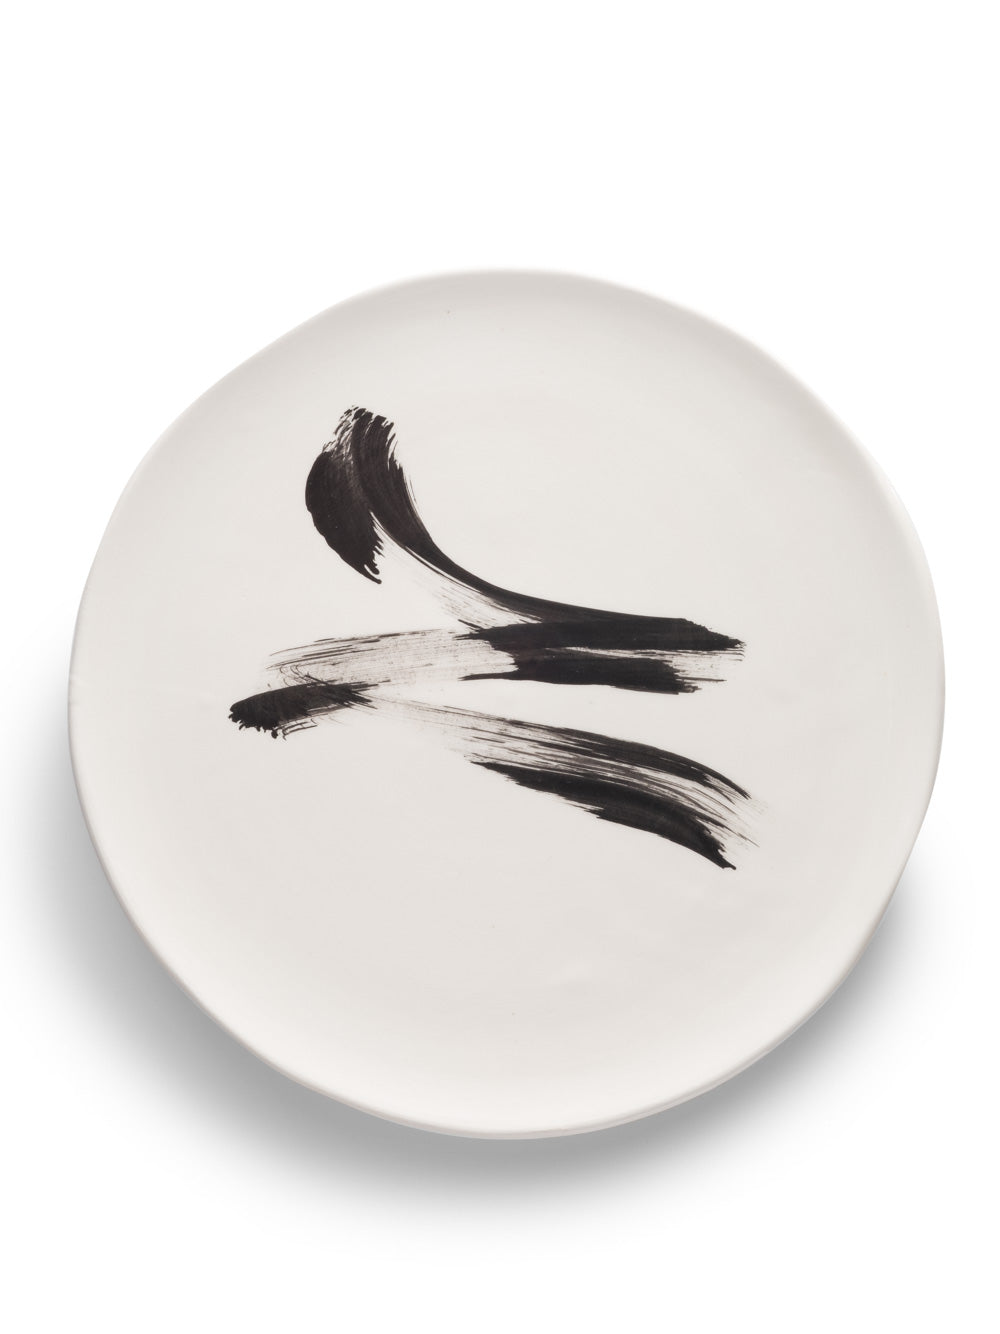 Cream Plate with Black Design